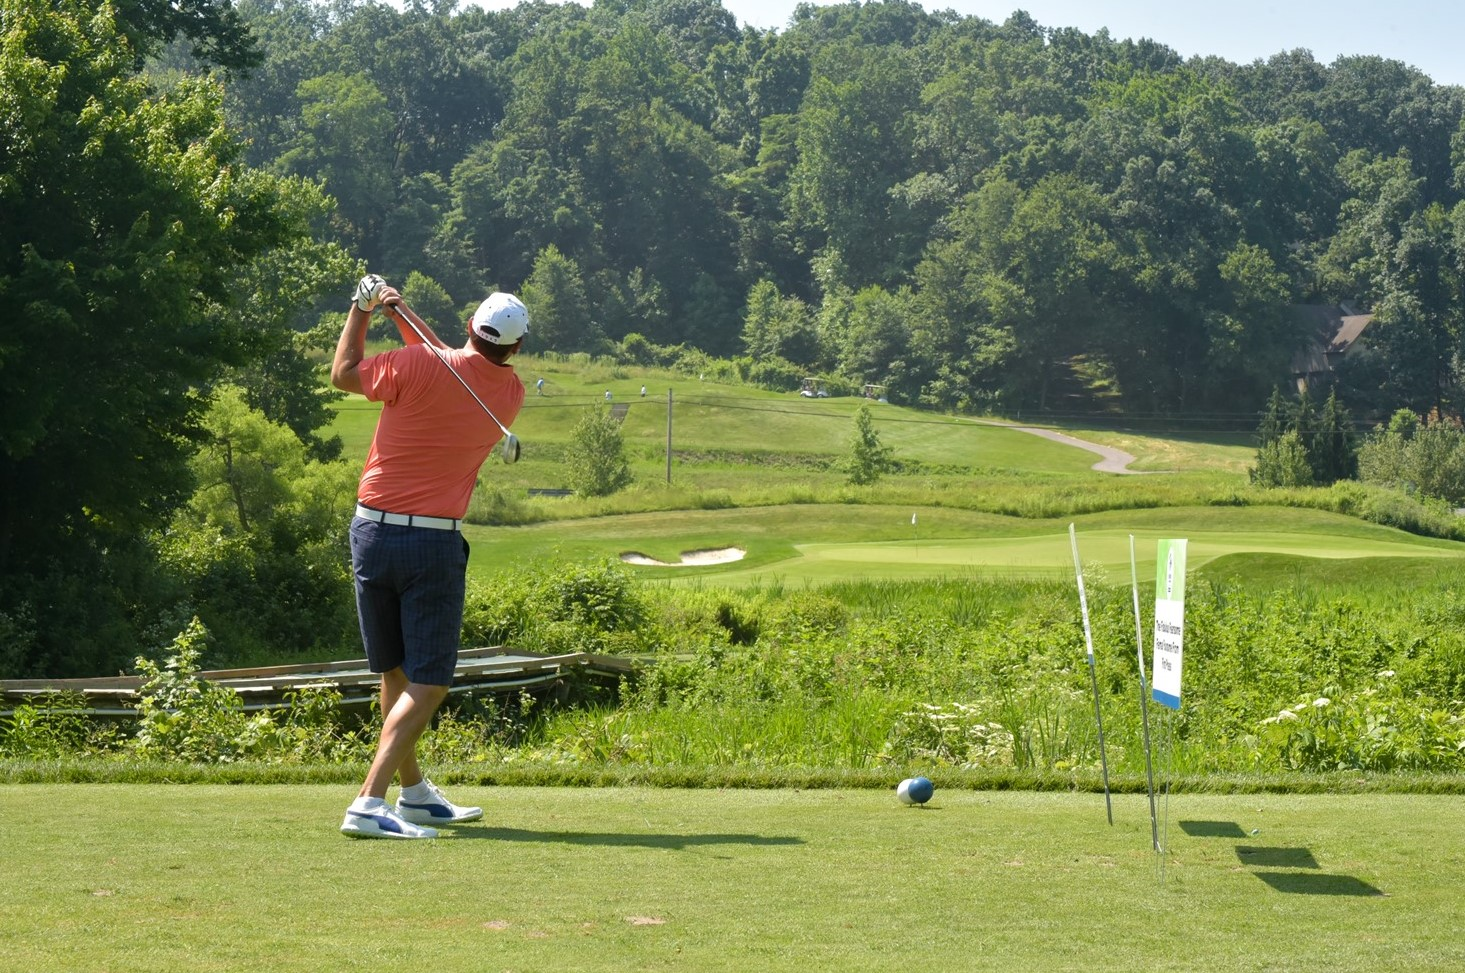 Habitat for Humanity of Chester County to Host 'Driving to Build' Golf Outing on Sept. 14